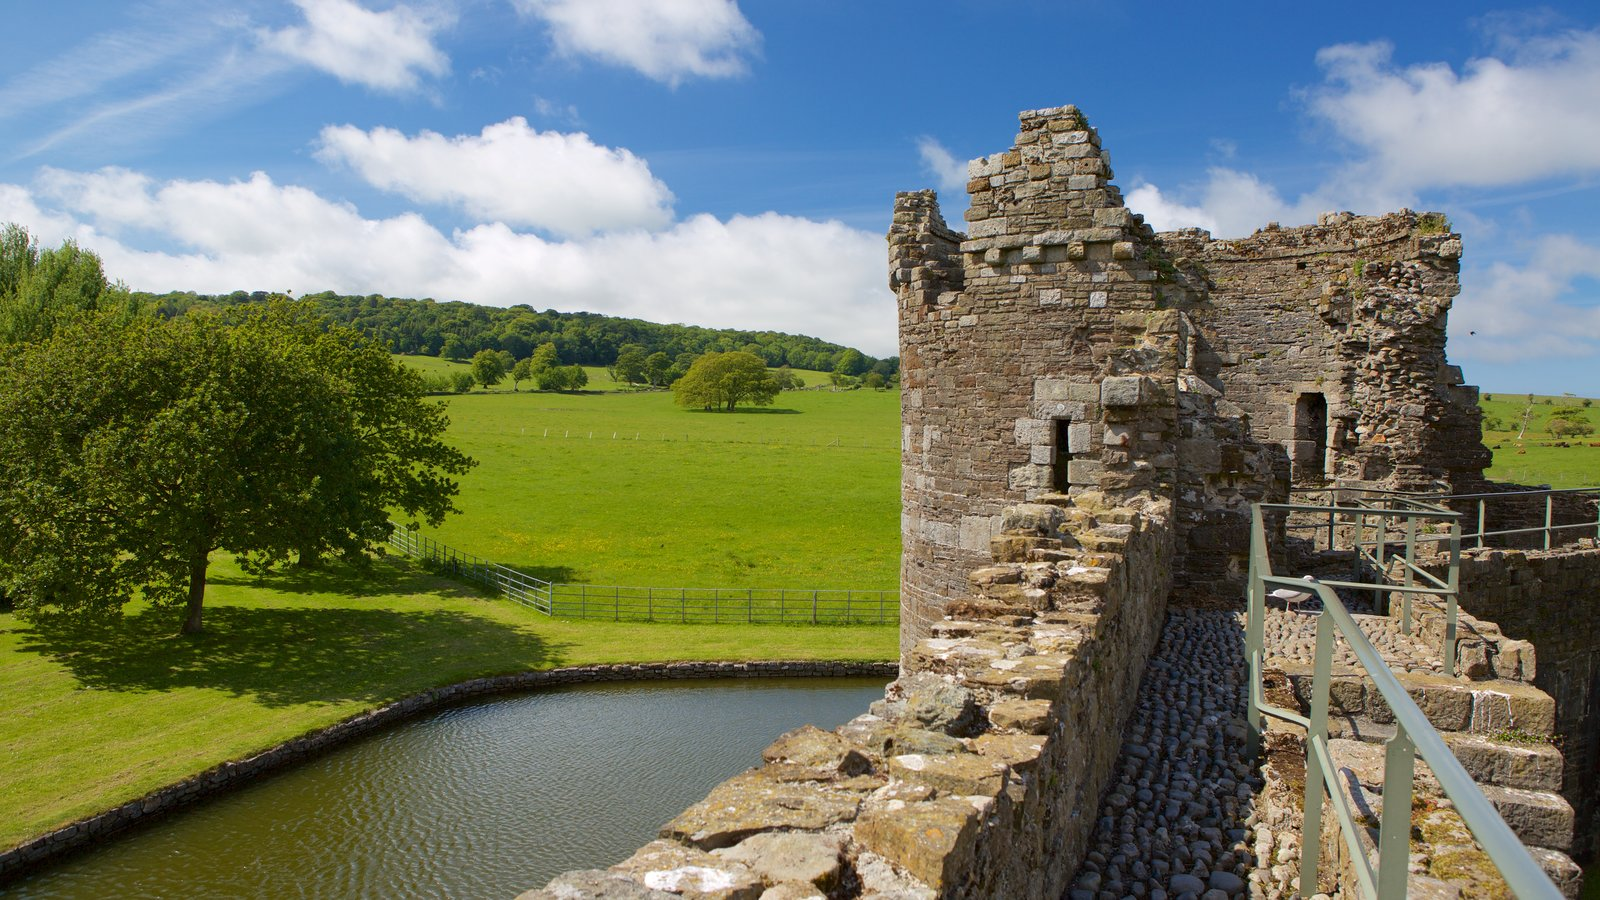 Beaumaris Castle showing tranquil scenes, a castle and a ruin